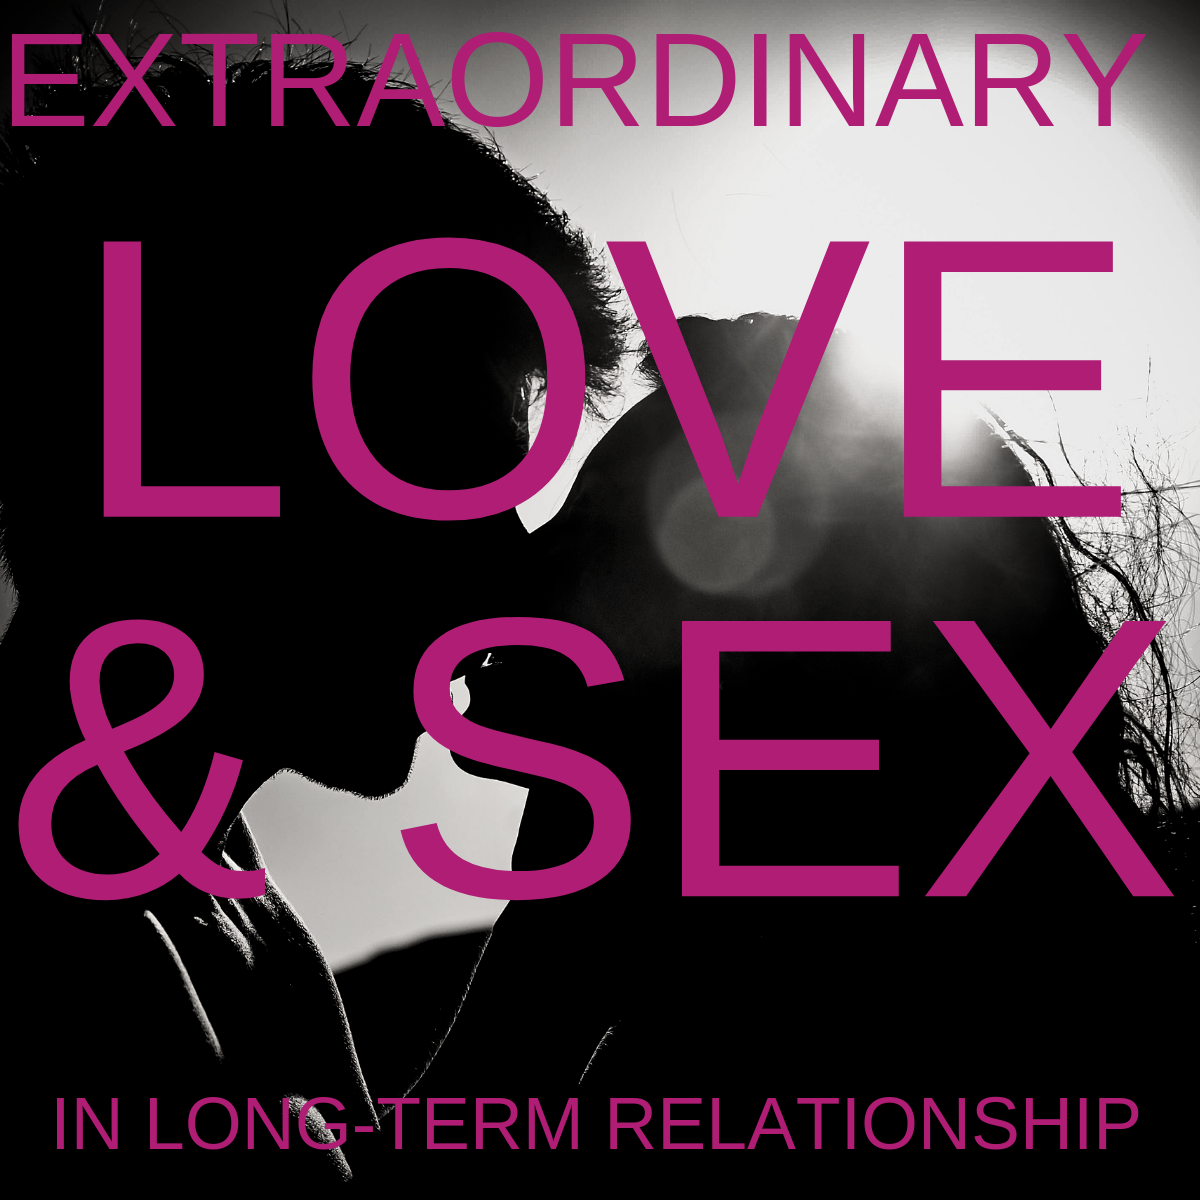 Square-ExtraordinaryLoveSex.png